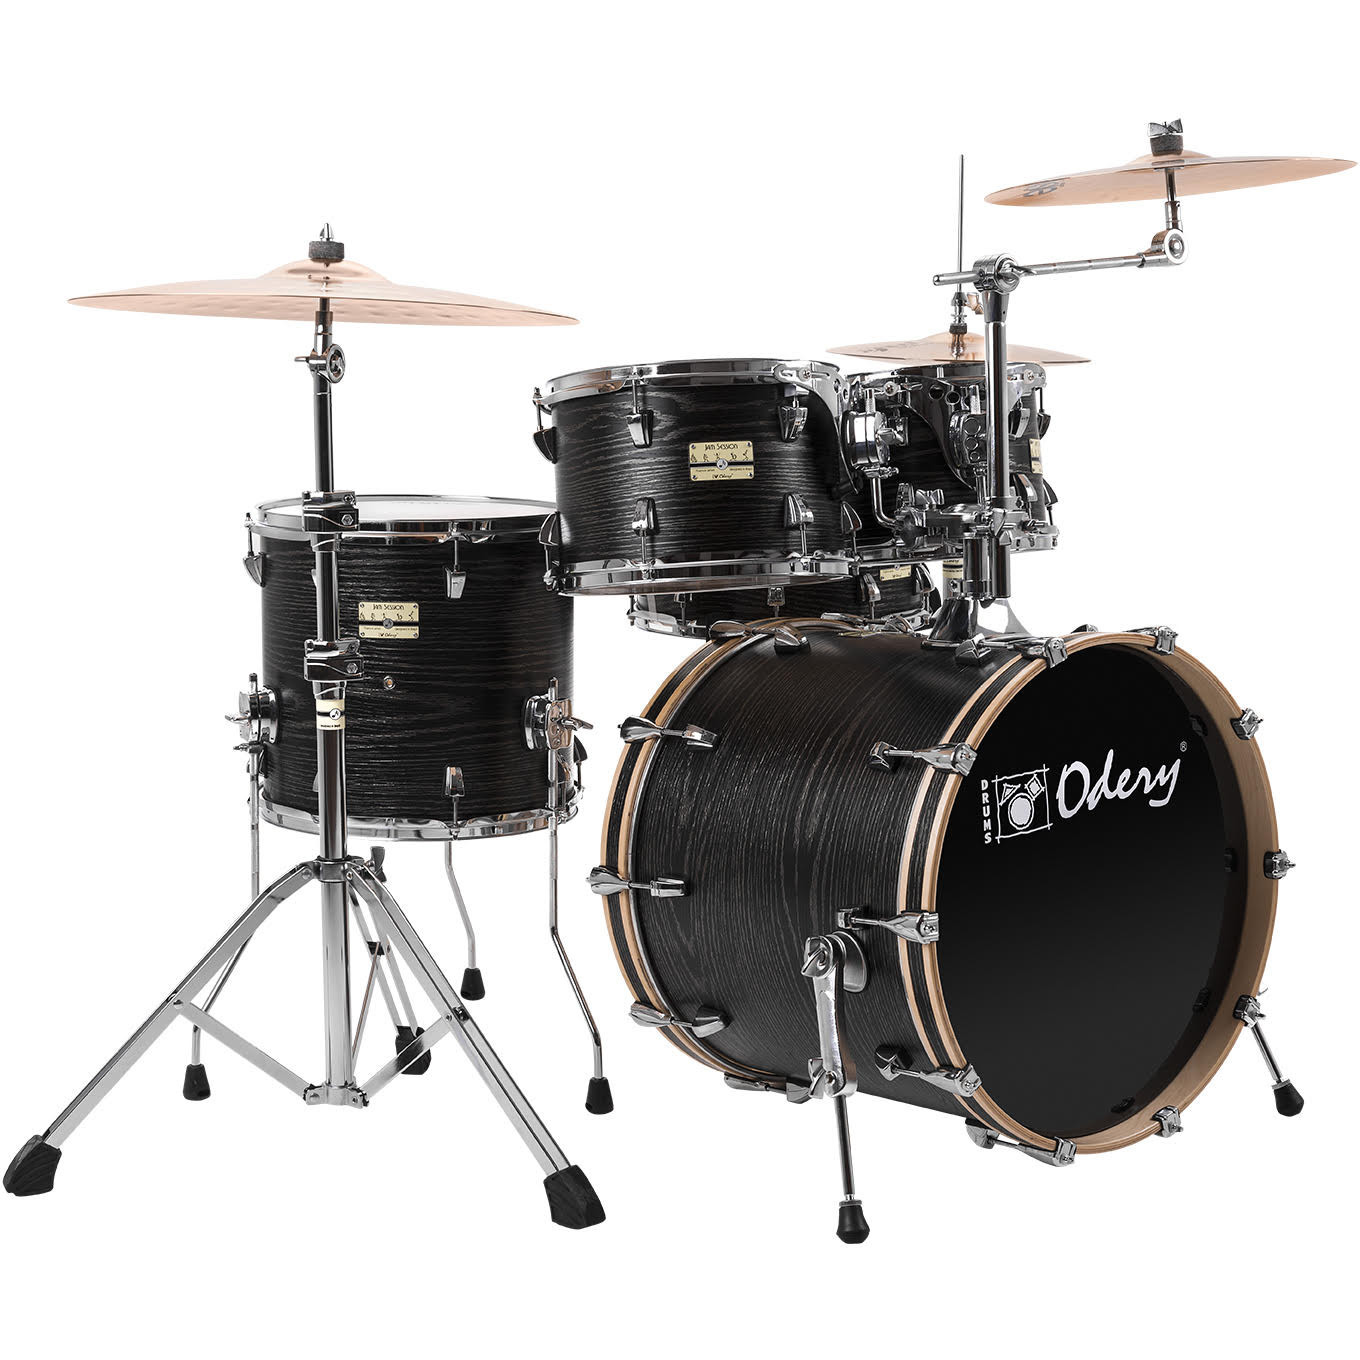 Odery FL200 Jam Session Black Ash 5 piece shell set with hardware